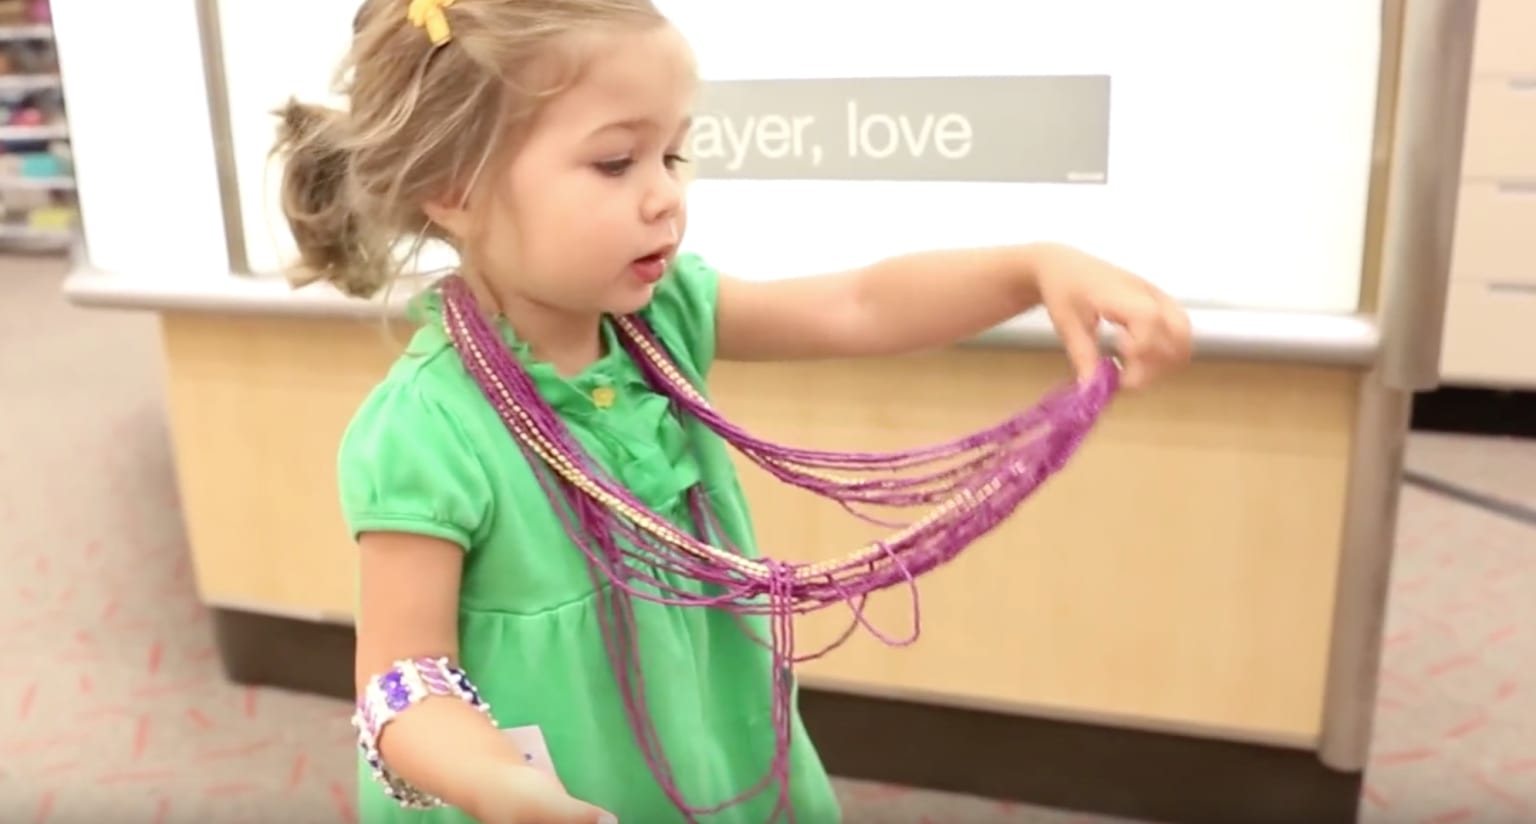 So easy a 2-year old can do it